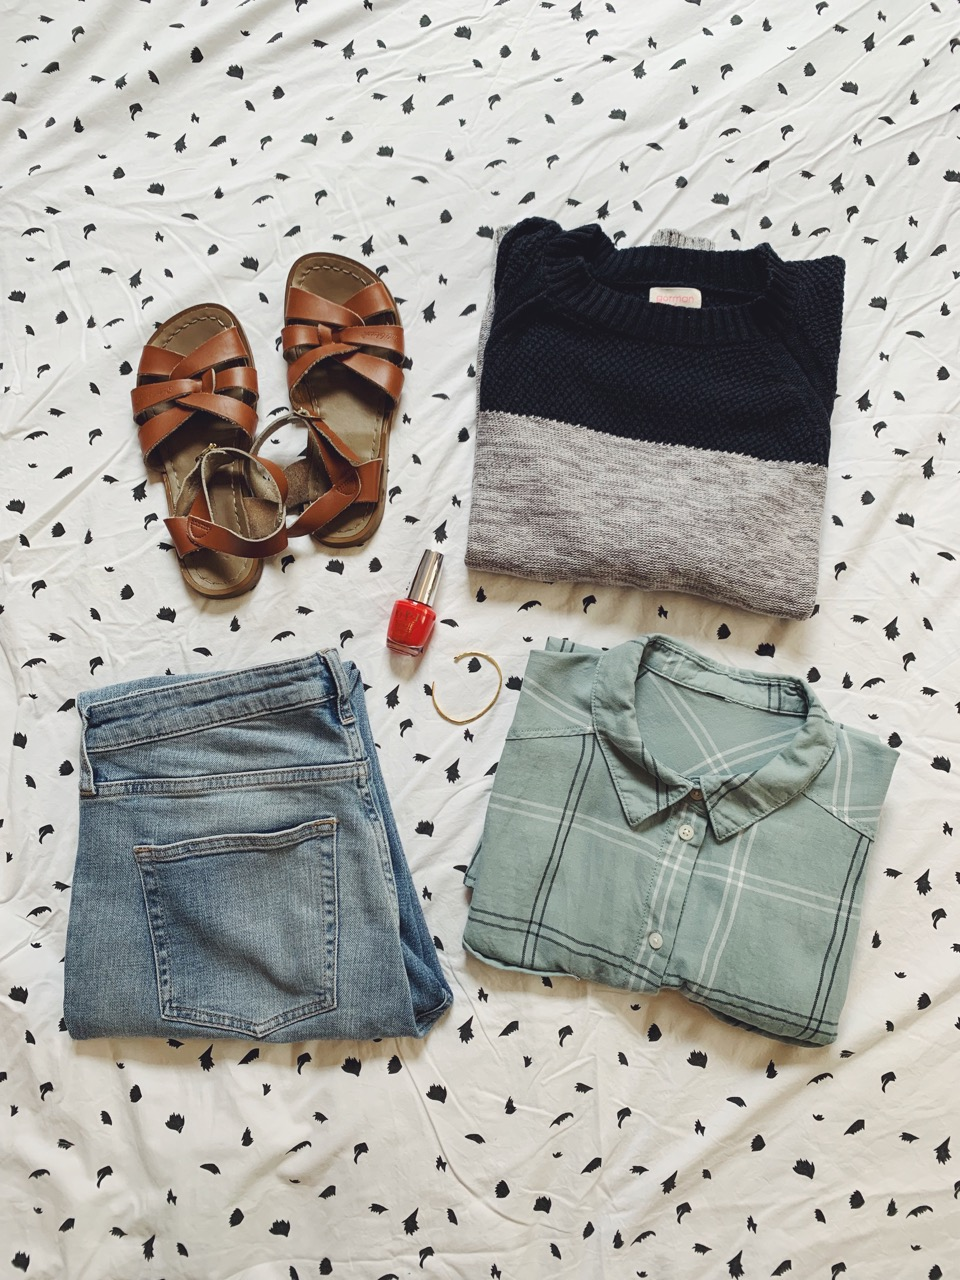 Clockwise from the top left: secondhand Saltwater sandals, secondhand linen–cotton Gorman sweater, organic cotton shirt, girlfriend jeans, O.P.I Unrepentantly Red nail polish and Odette NY arrow cuff.